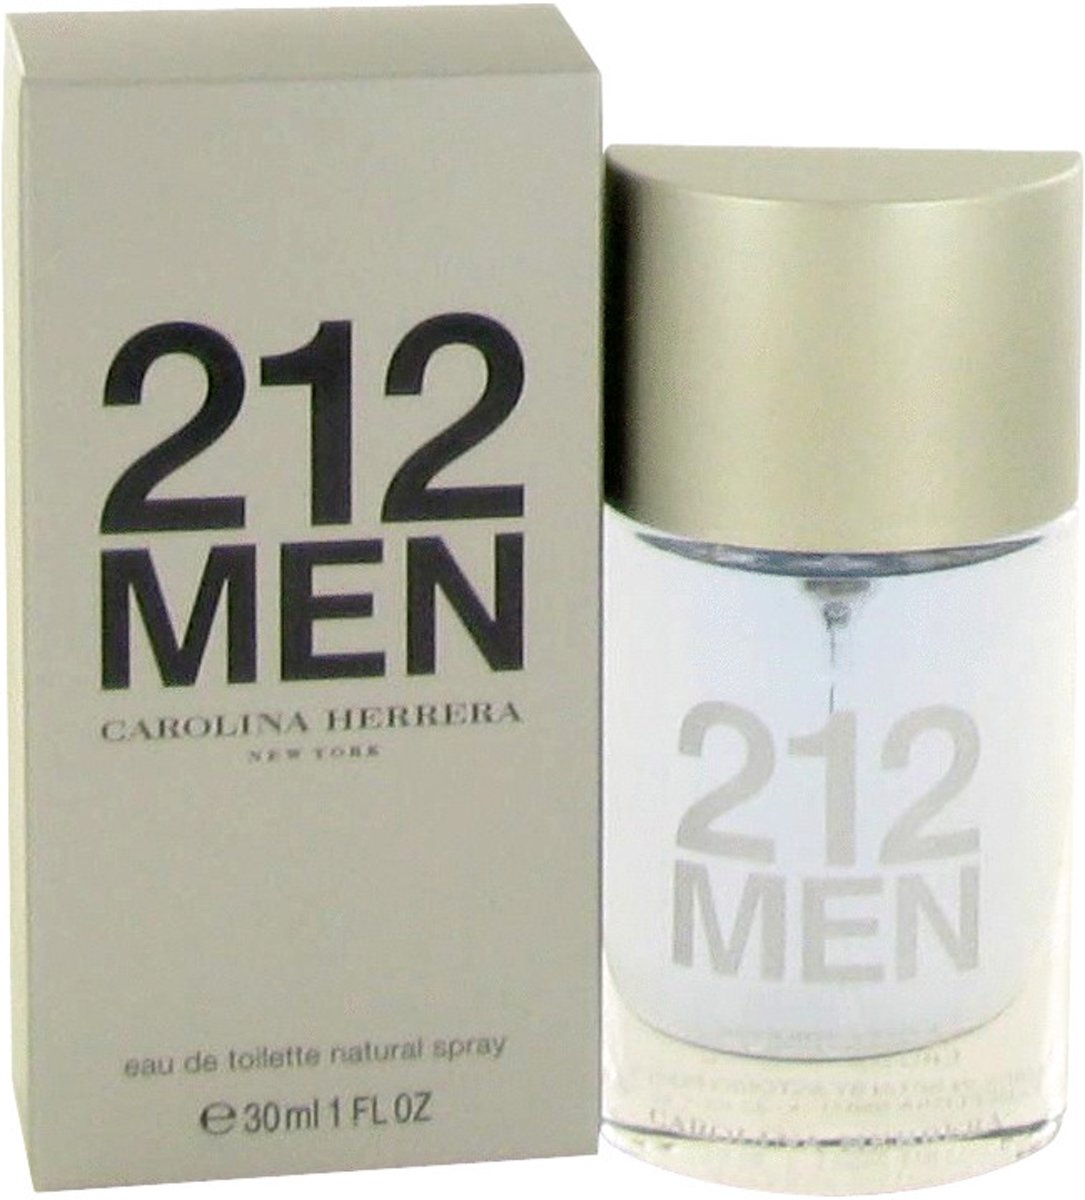 Carolina Herrera 212 Men - 30ml - Eau de toilette